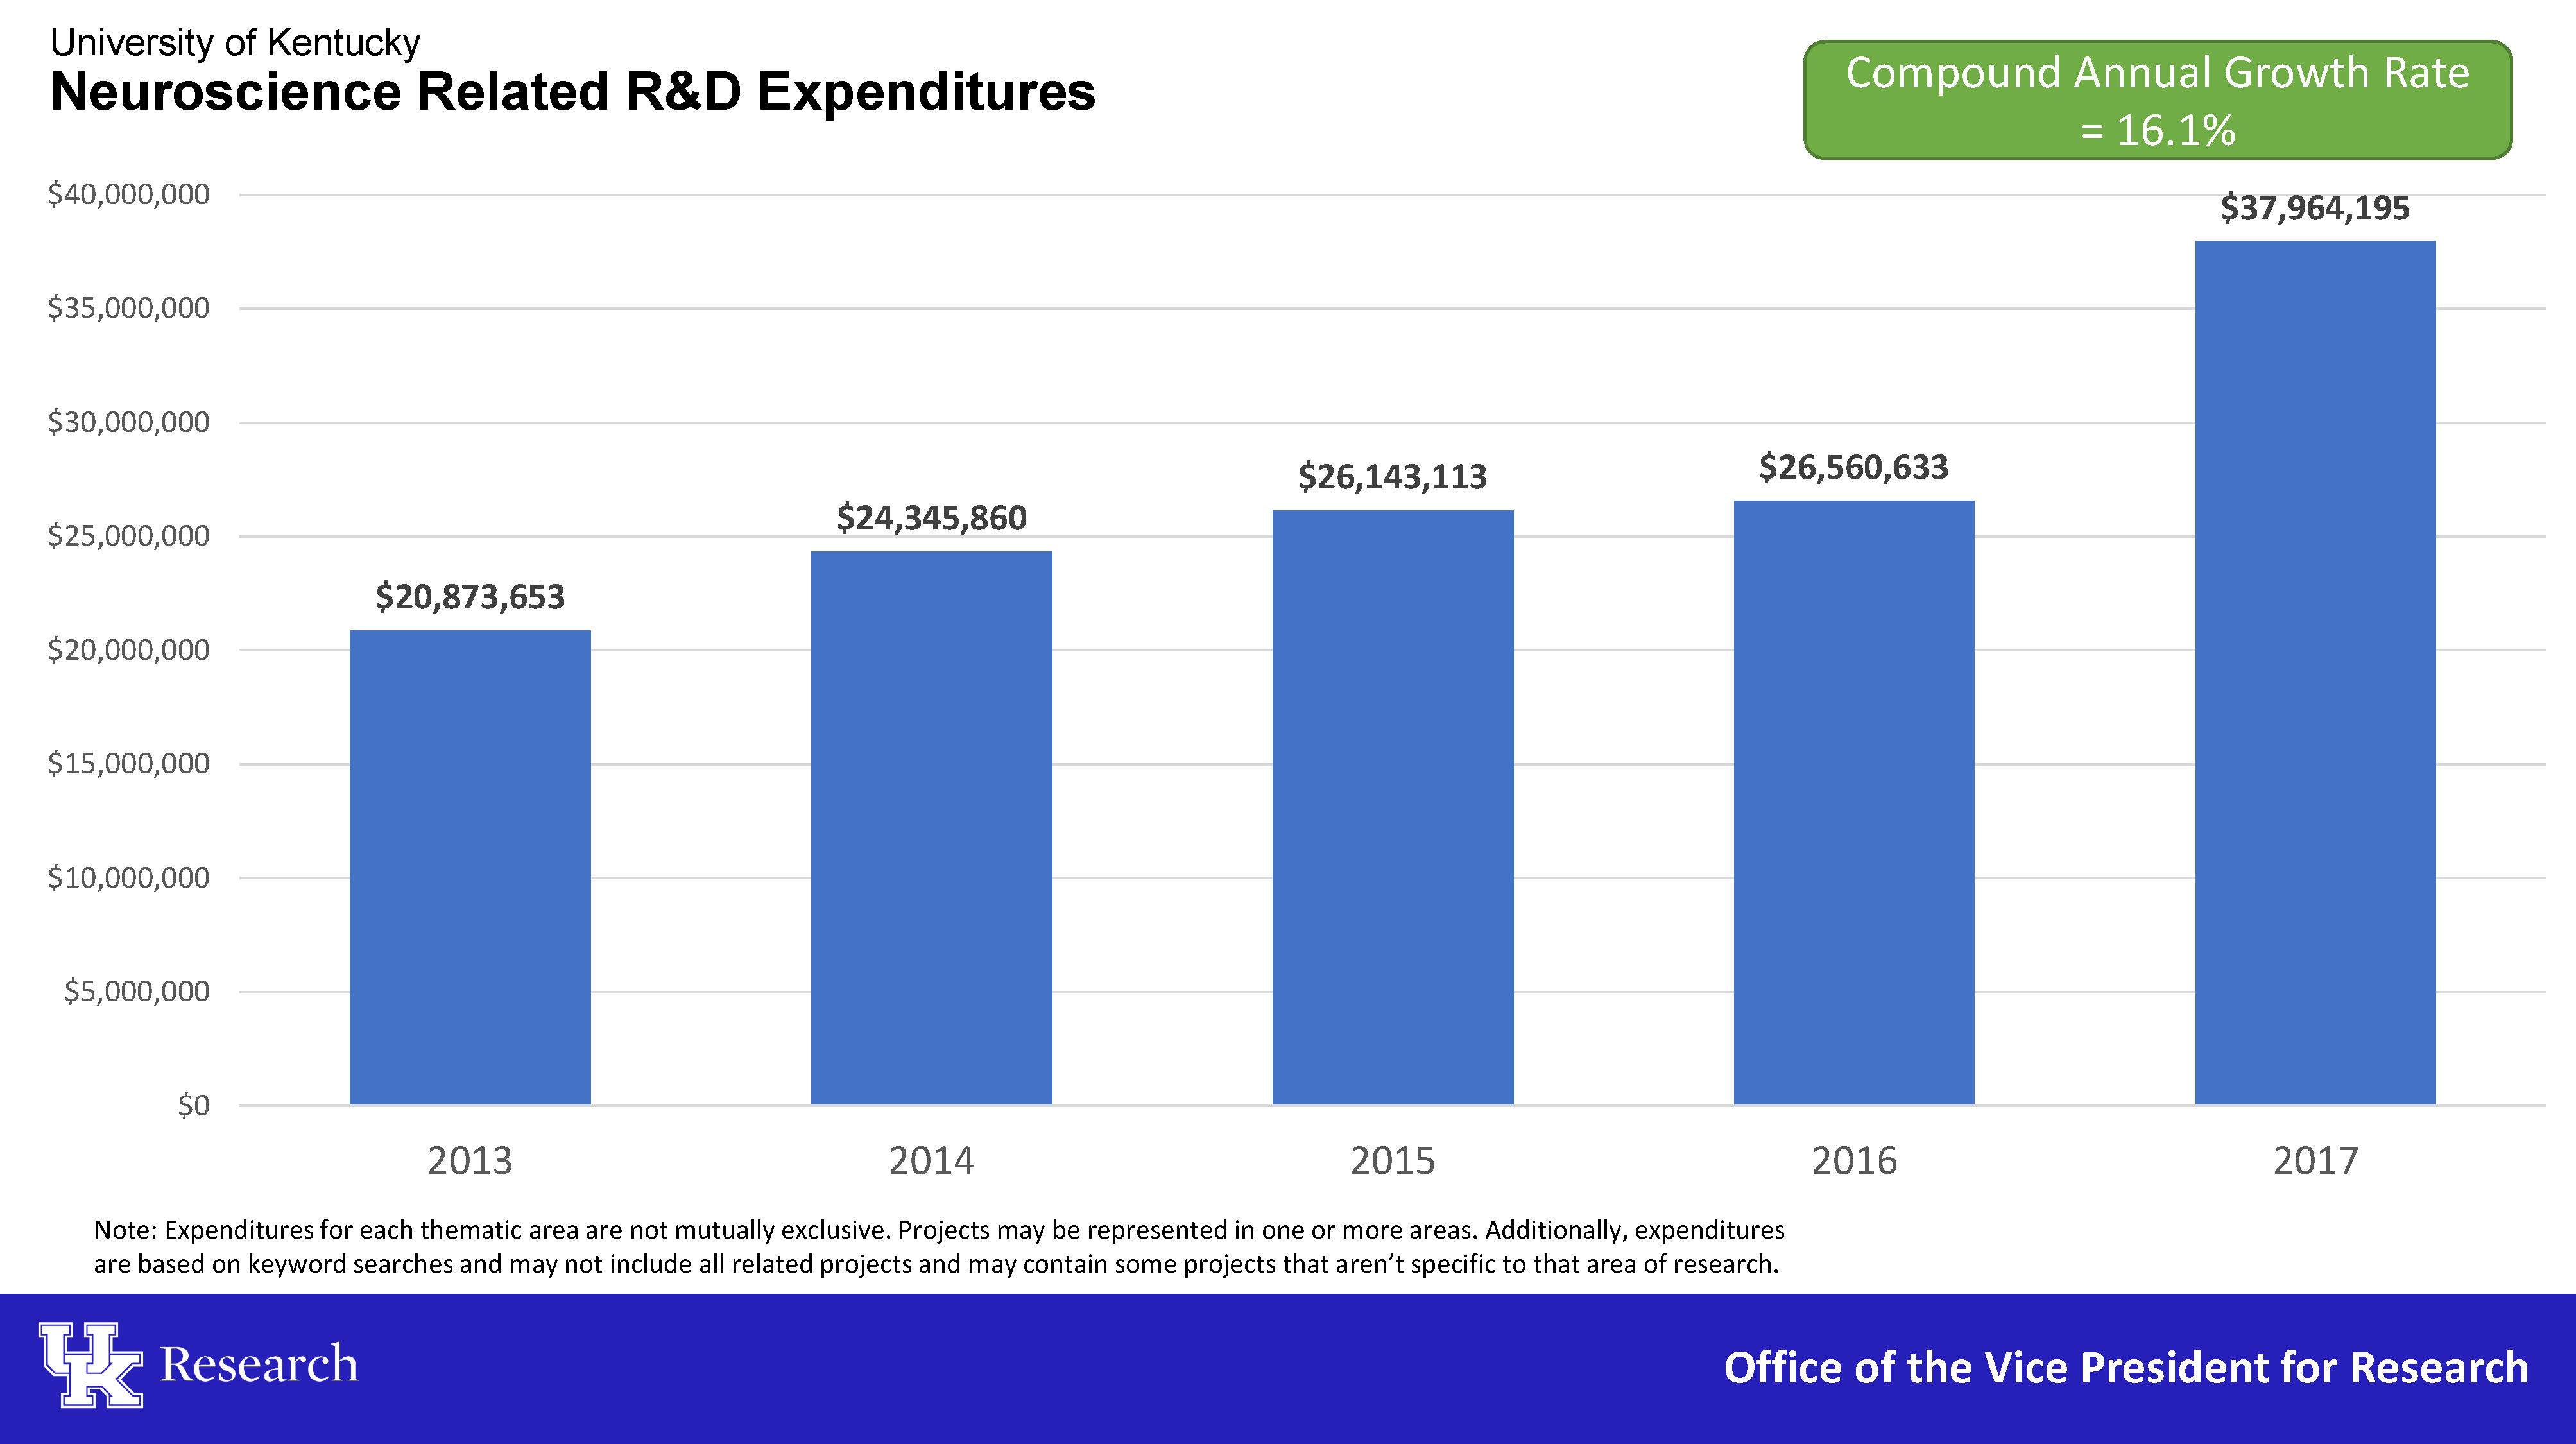 Neuroscience Related R&D Expenditures 2013-2017